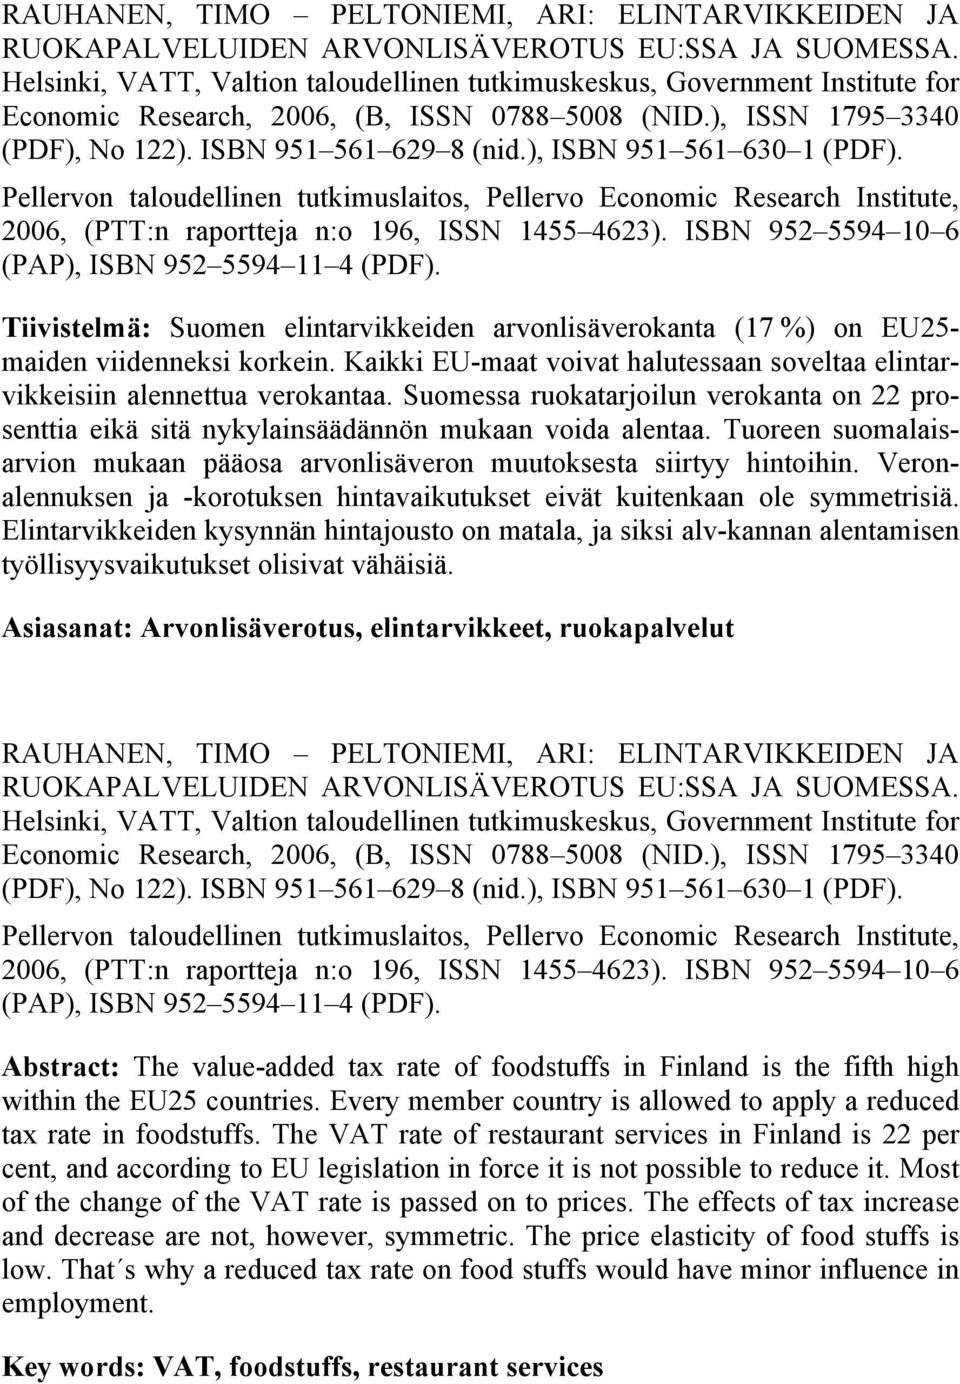 ), ISBN 951 561 630 1 (PDF). Pellervon taloudellinen tutkimuslaitos, Pellervo Economic Research Institute, 2006, (PTT:n raportteja n:o 196, ISSN 1455 4623).